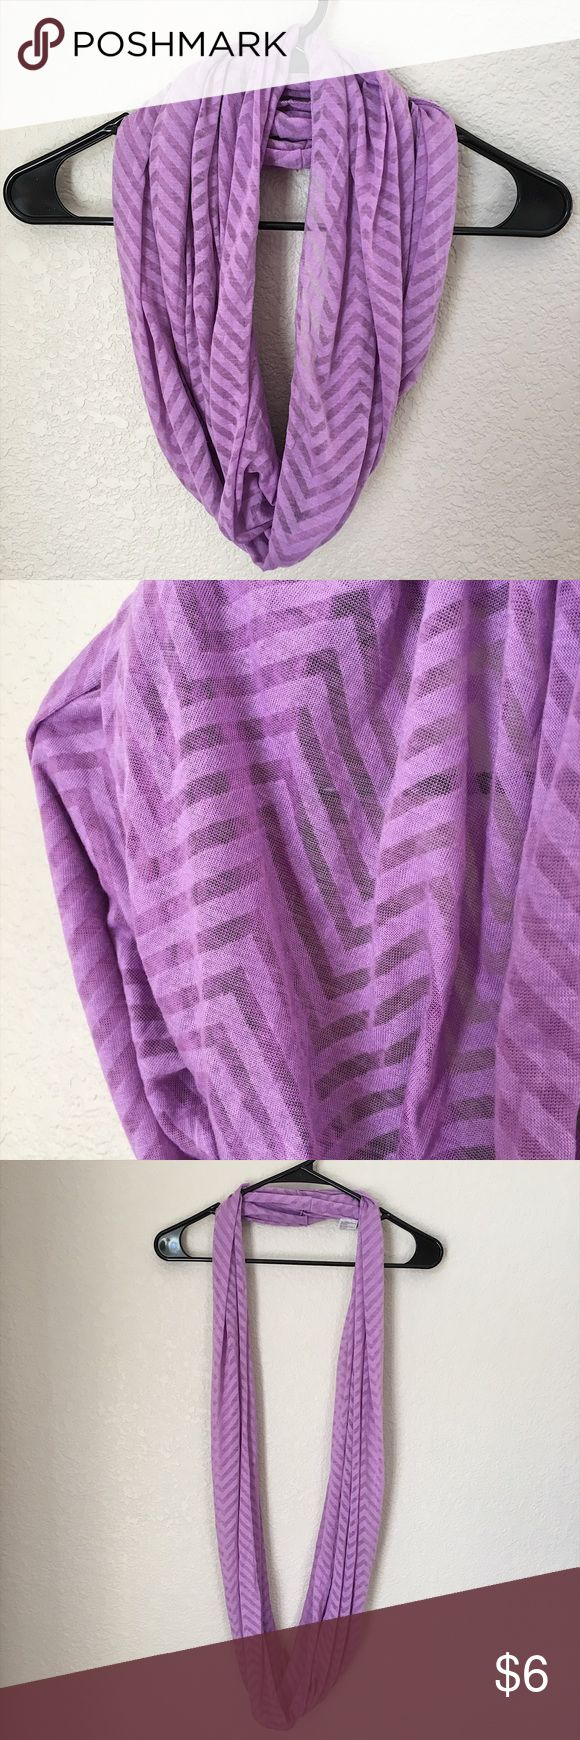 Chevron Infinitely Scarf Adorable light purple infinity scarf with a chevron pattern. Light weight. Accessories Scarves & Wraps